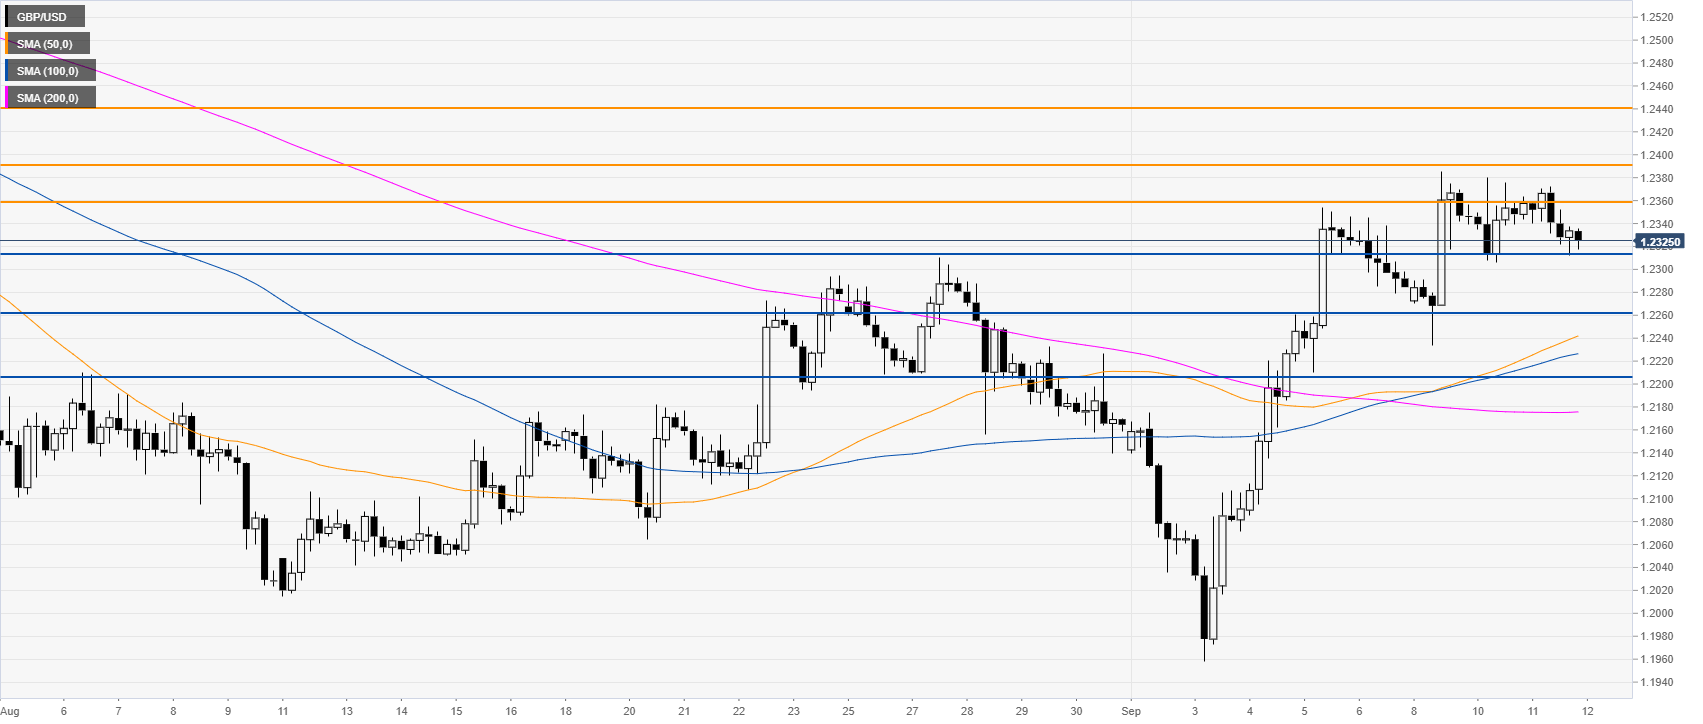 GBP/USD technical analysis: The Cable is sidelined near the